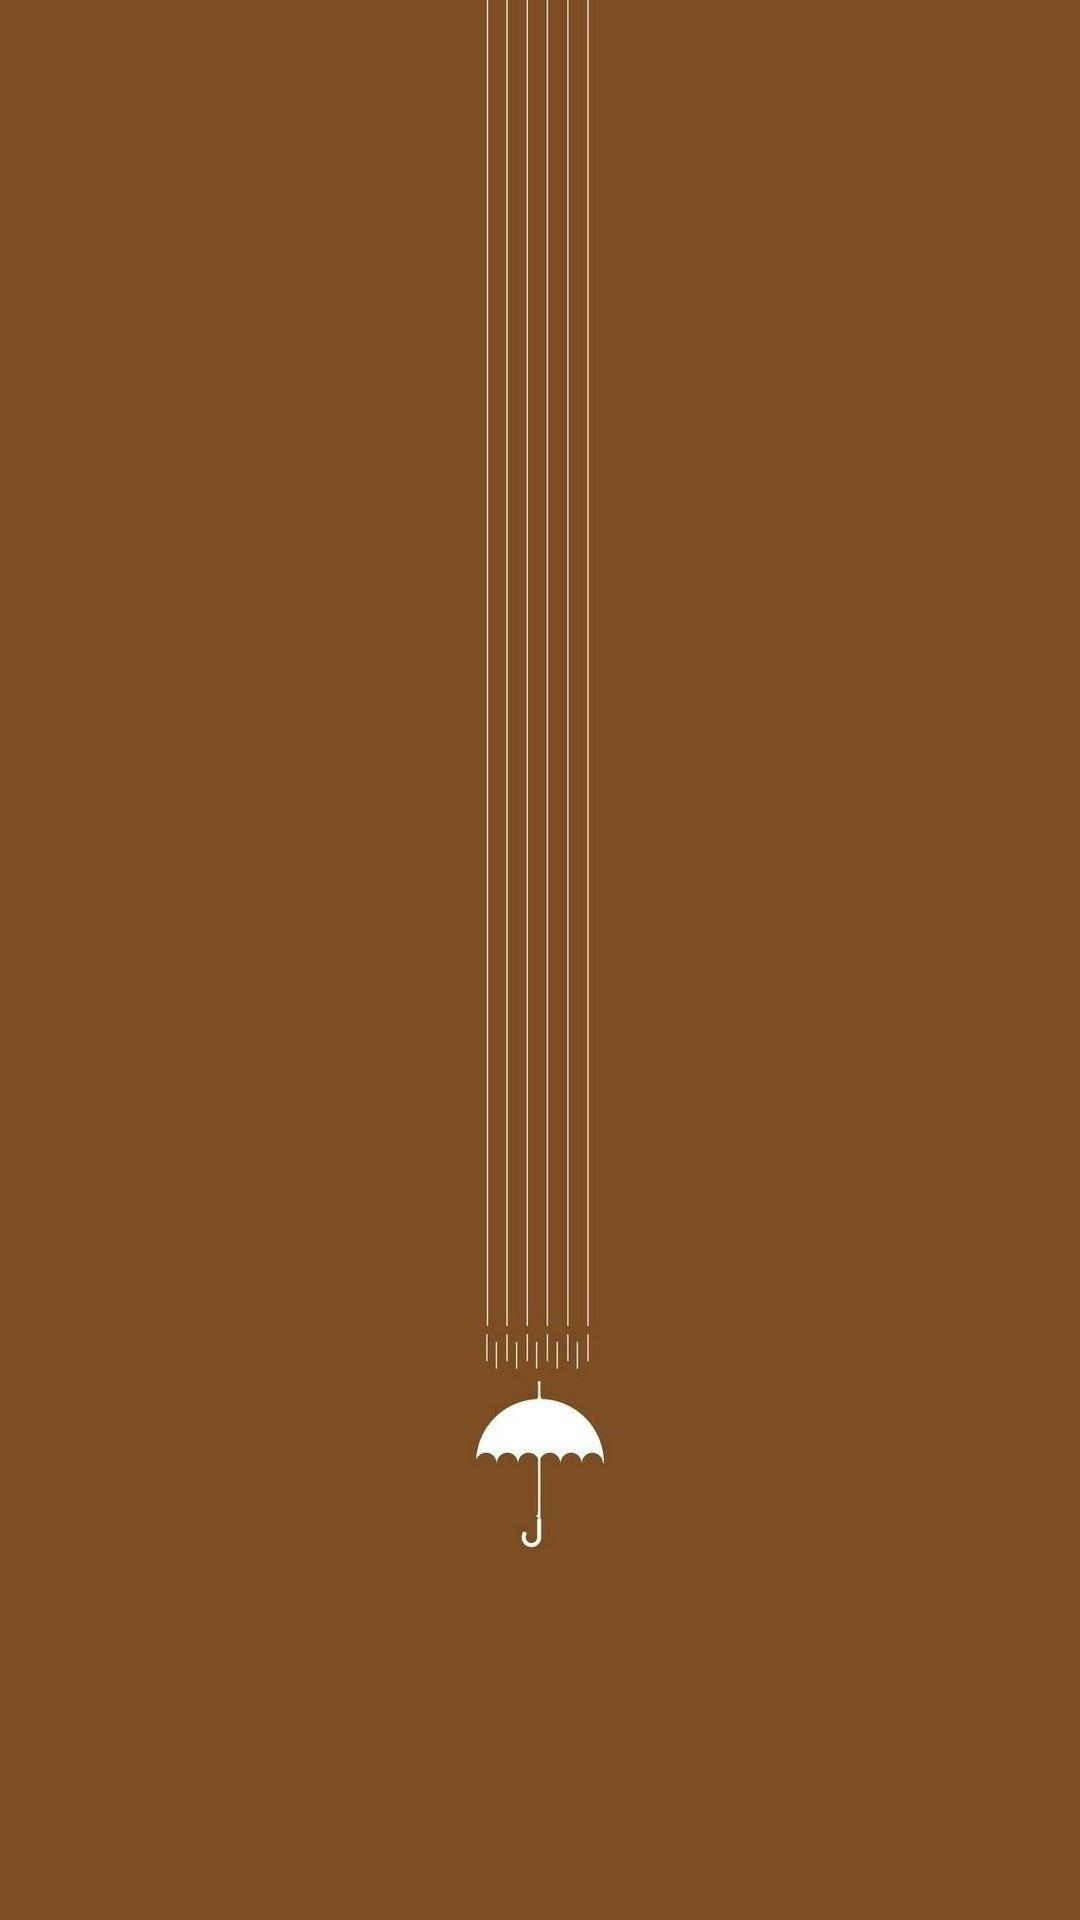 Umbrella Tap To See Minimal Iphone 5 6 Wallpapers Collection